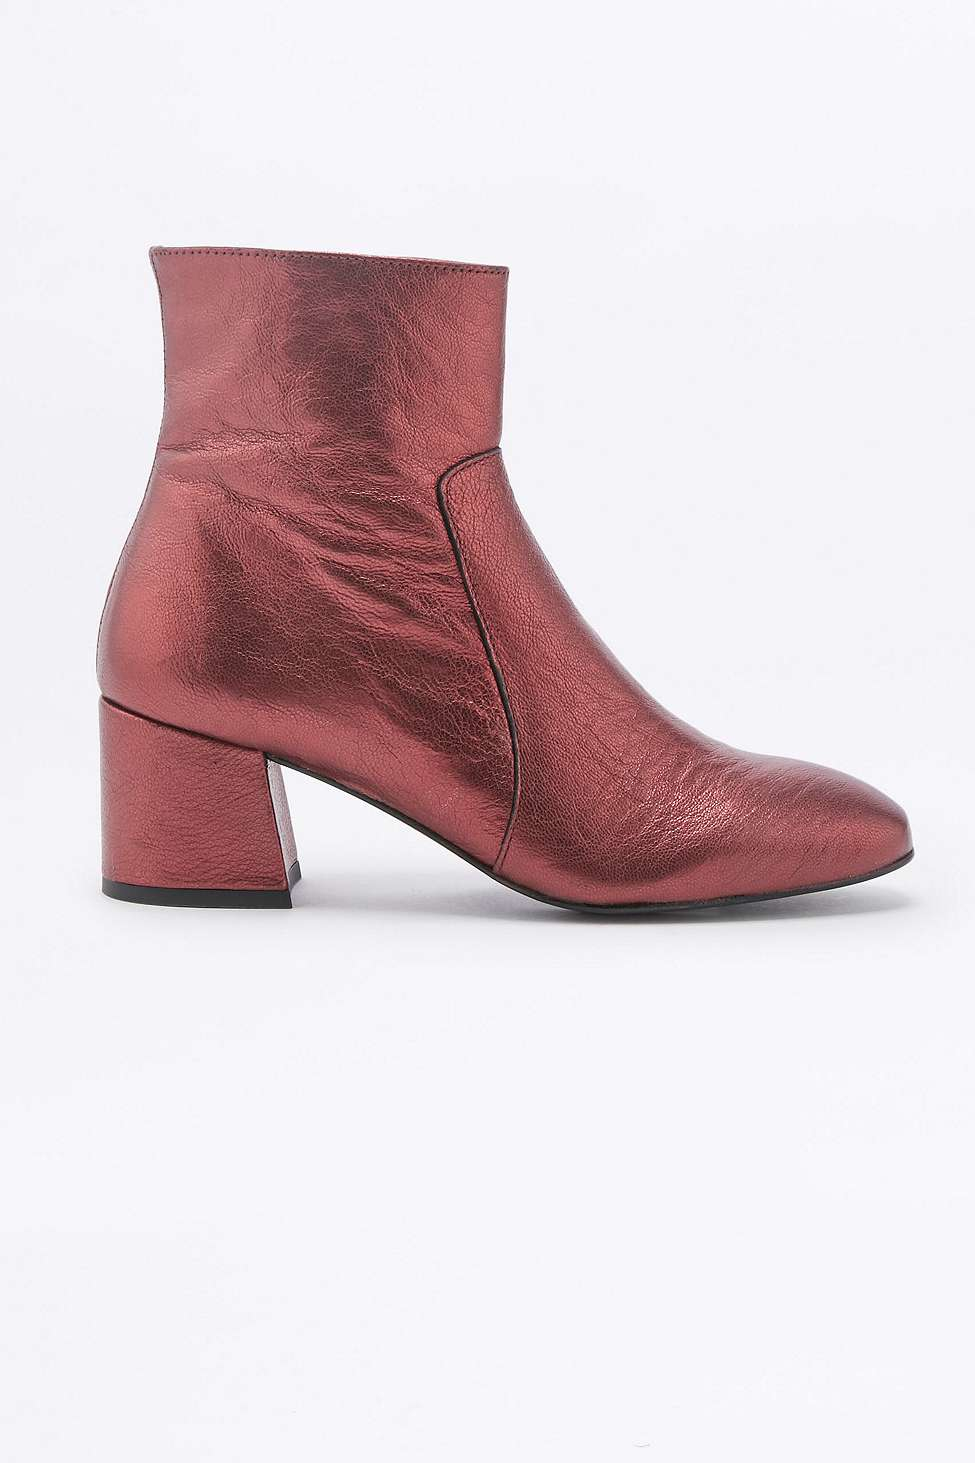 Metallic Leather Boots : Urban outfitters poppy metallic red leather ankle boots lyst